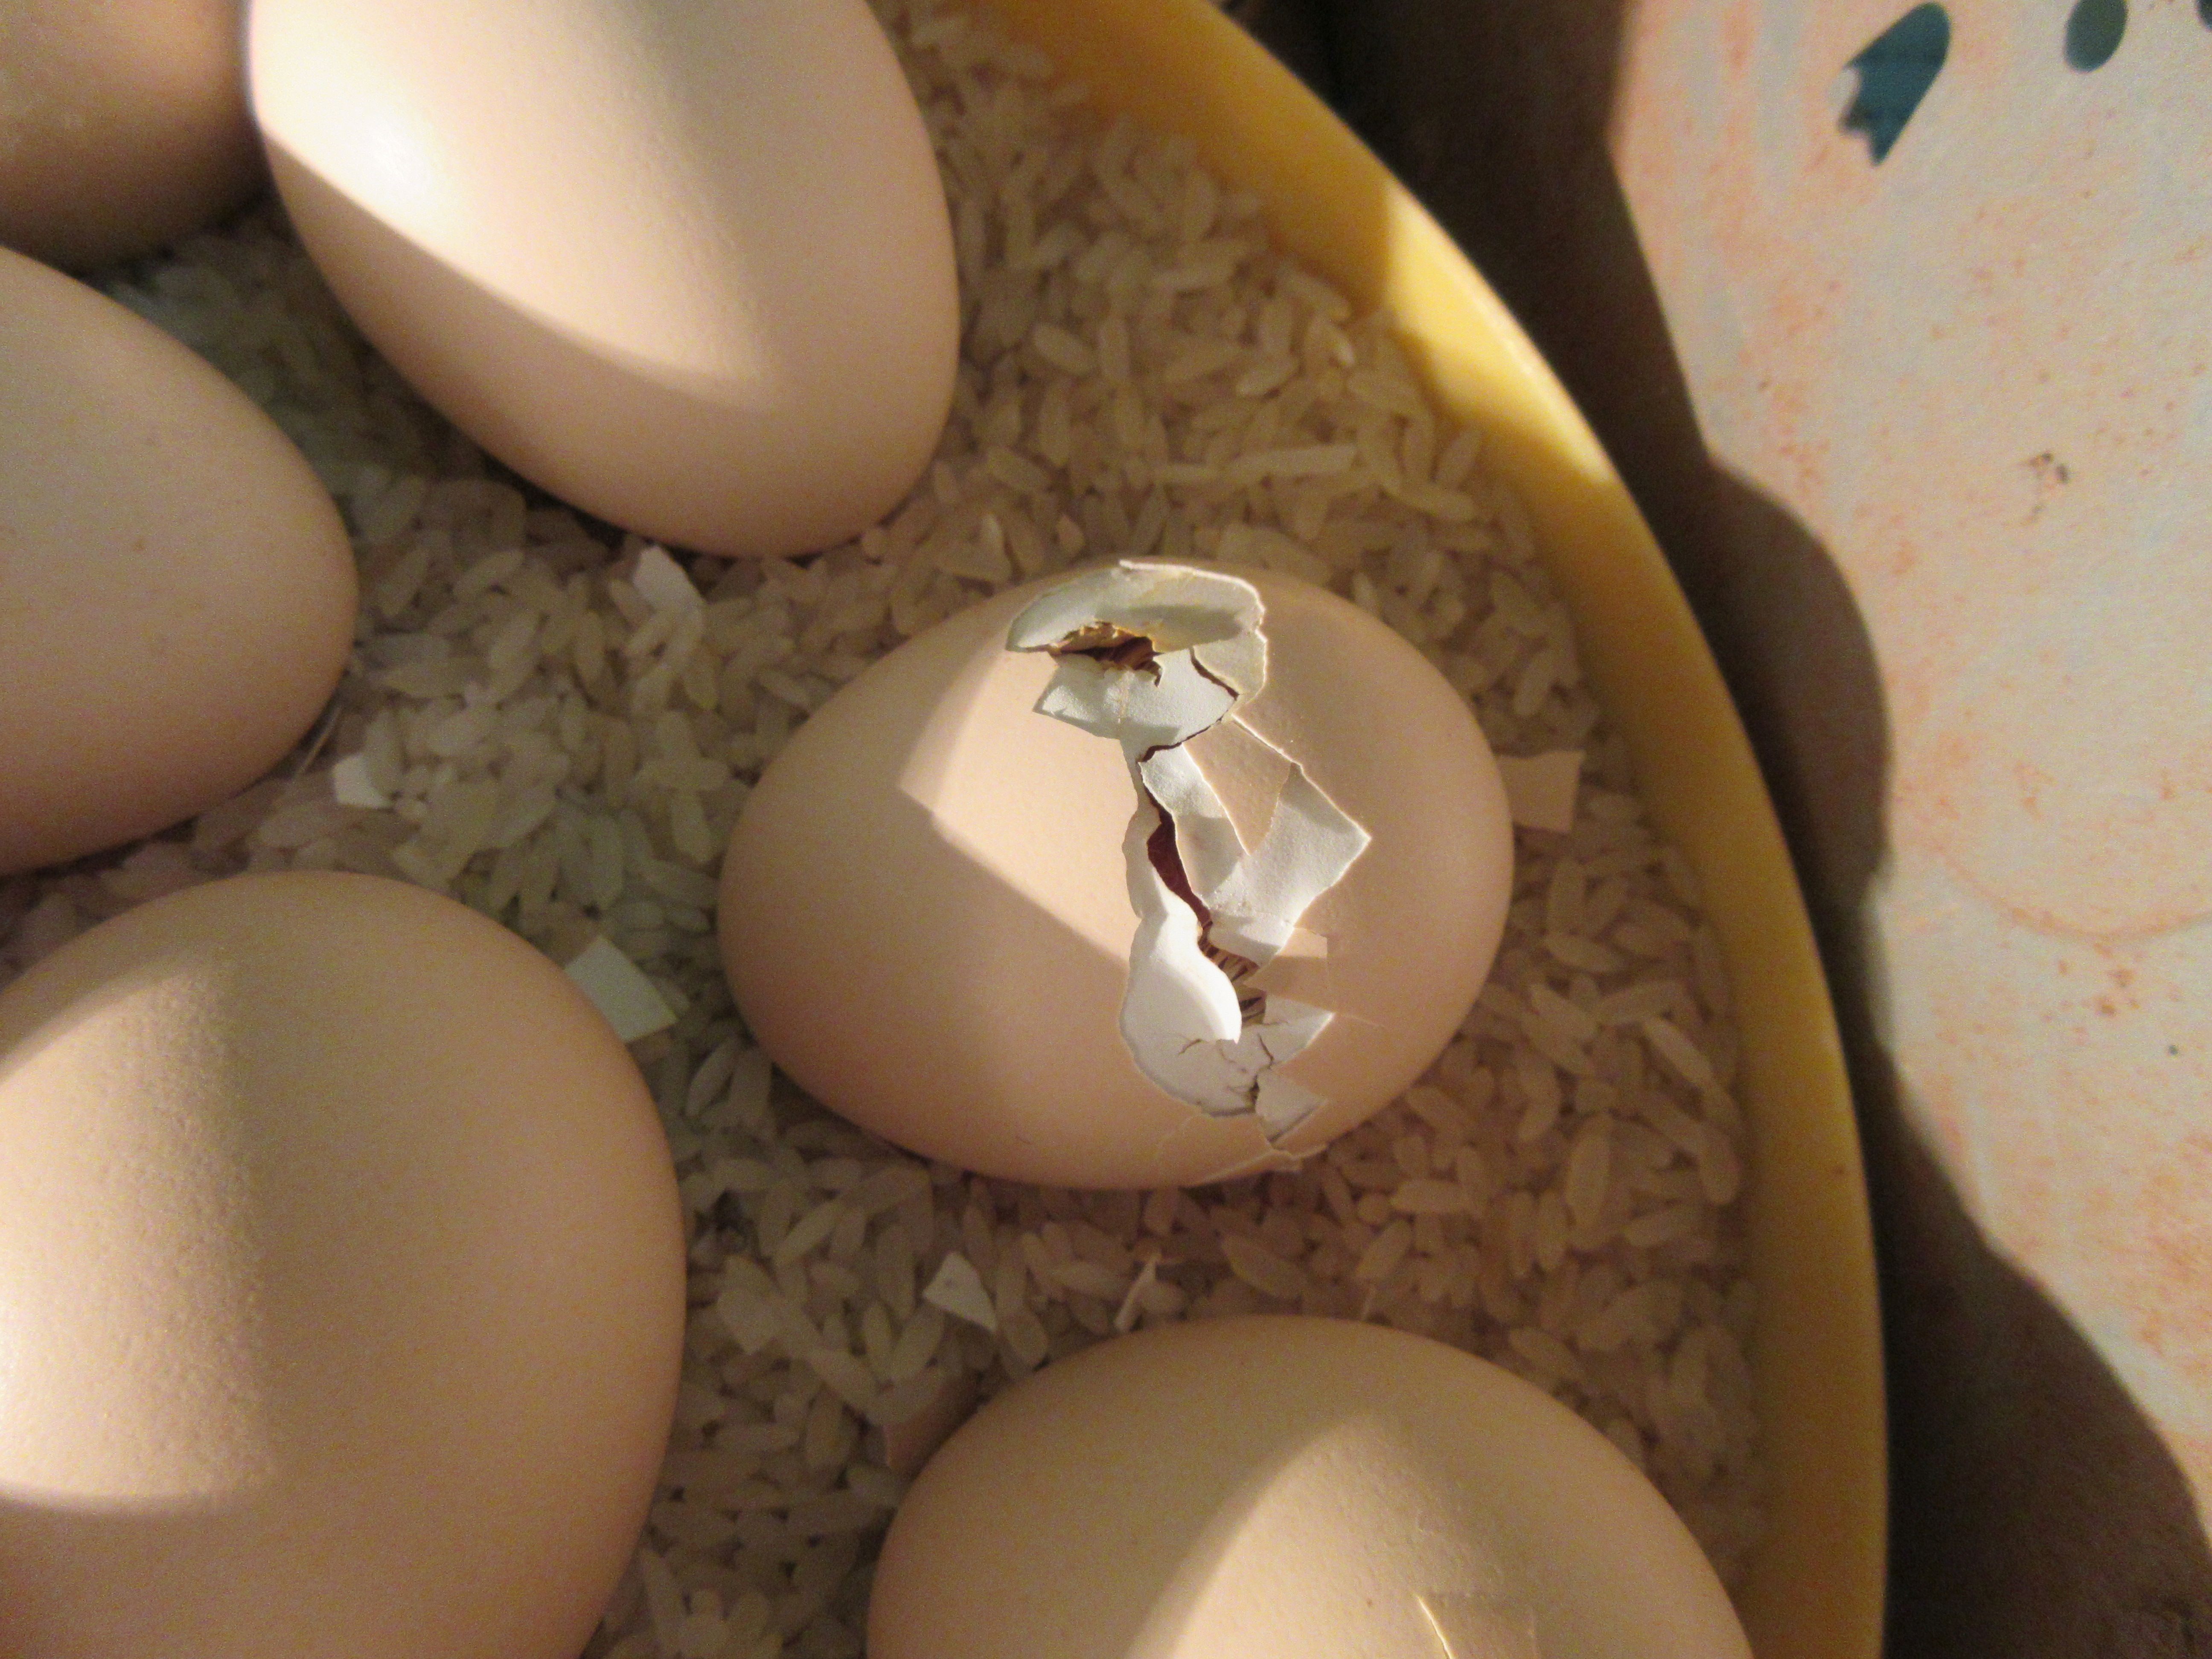 Picture of Chicken Eggs Started to Hatch